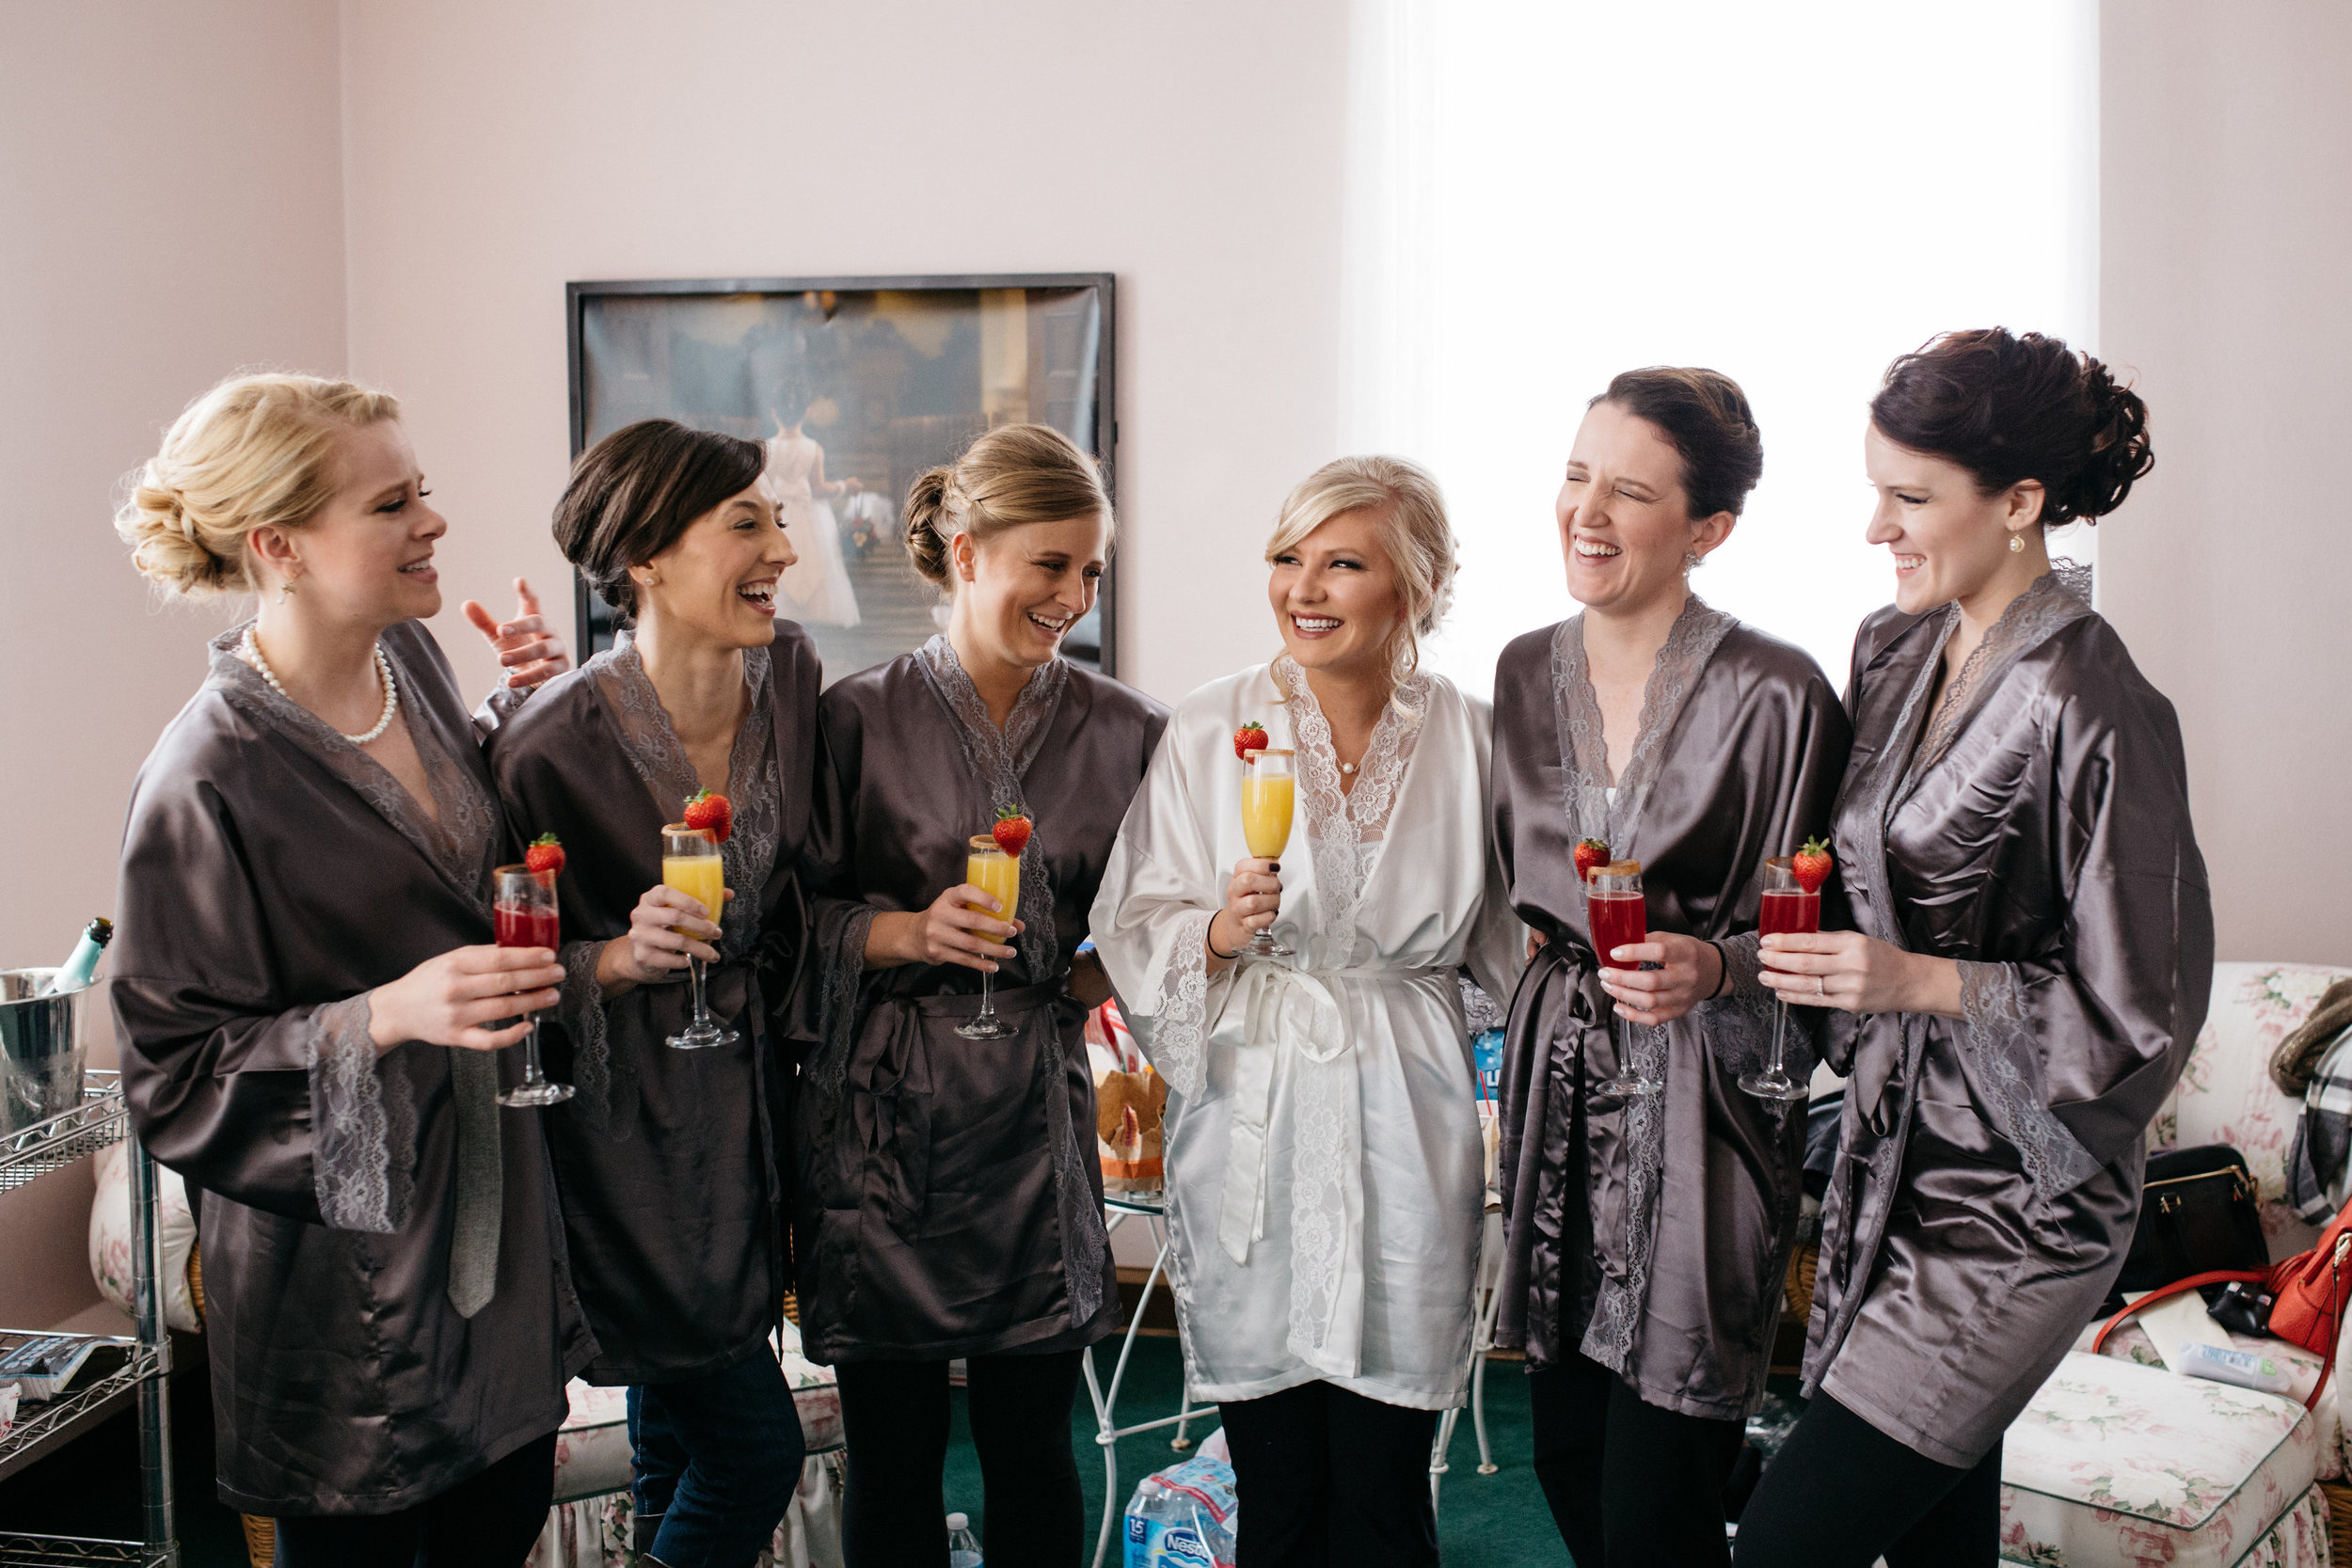 Ohio Photographers and Bridesmaids Getting Ready for Wedding